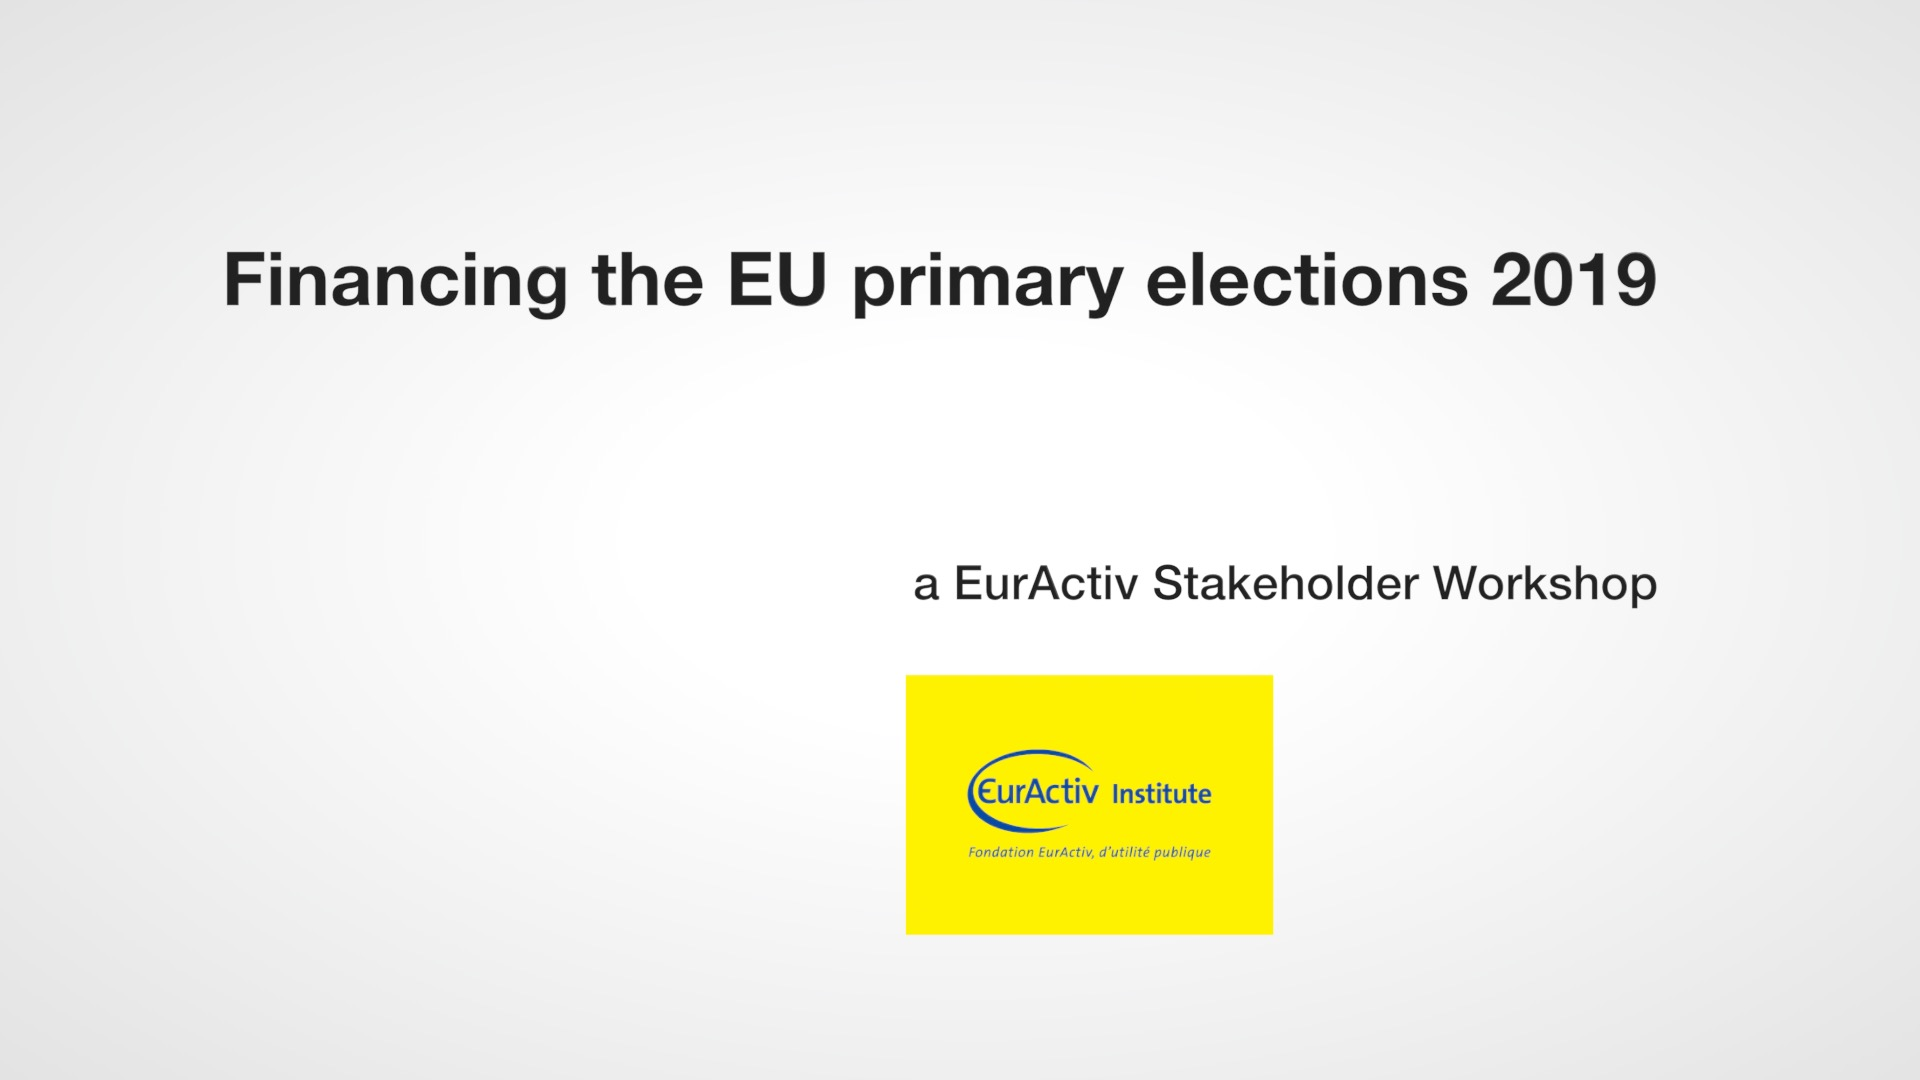 EU Primary elections 2019